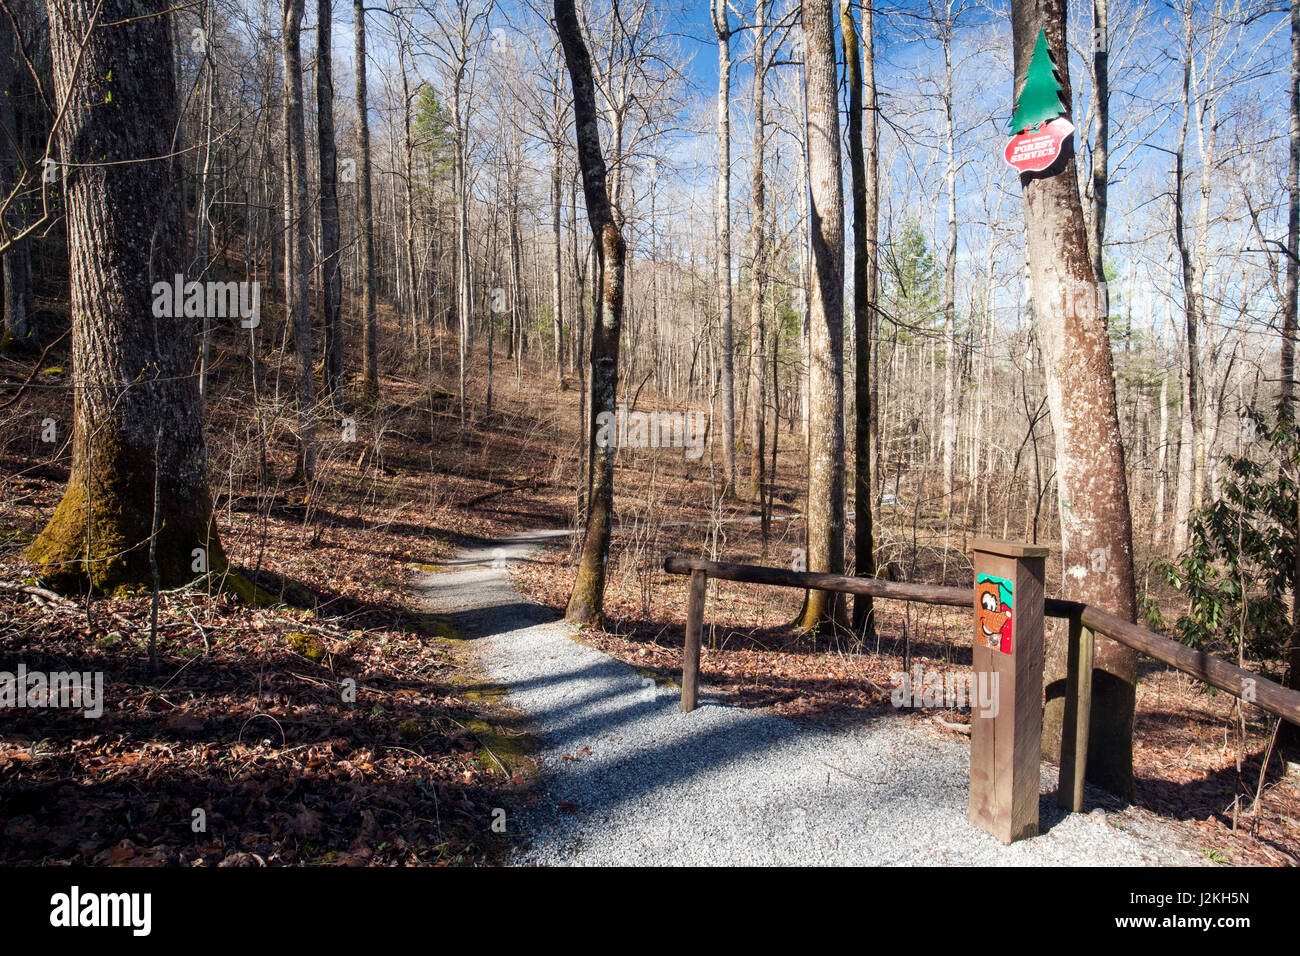 Trail at Holmes Educational State Forest - Hendersonville, North Carolina, USA - Stock Image